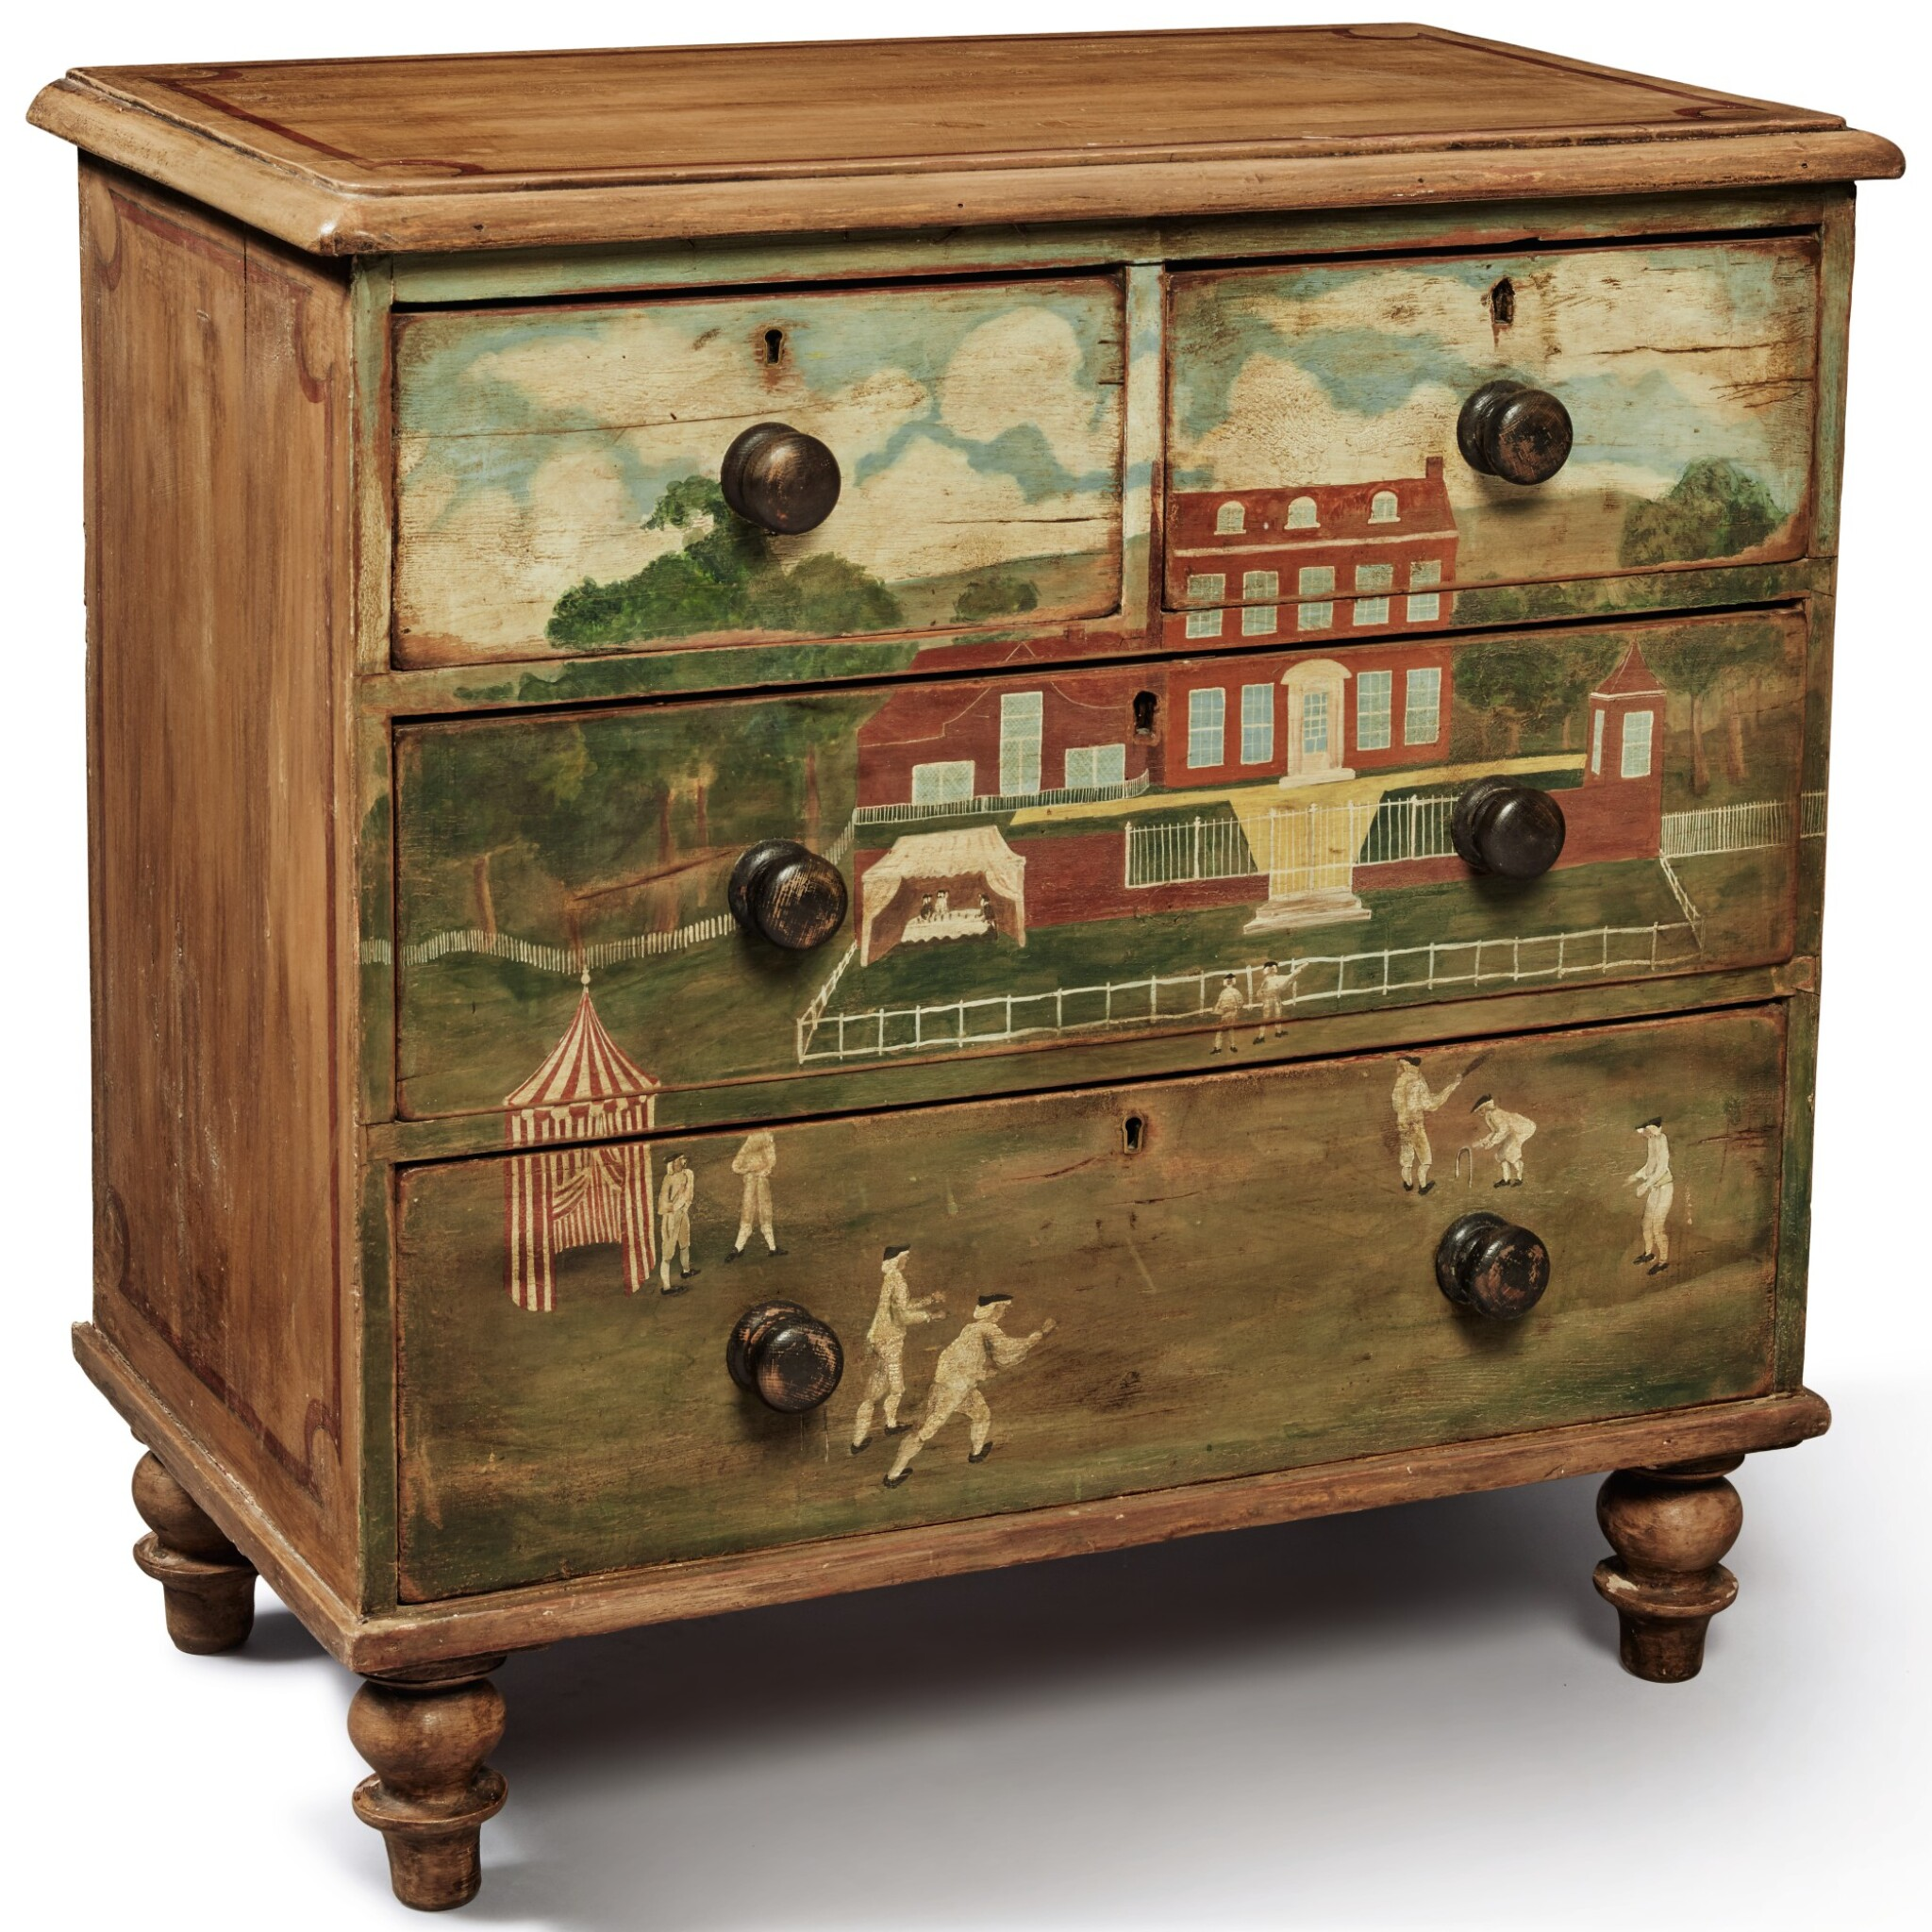 View full screen - View 1 of Lot 1497. PAINT-DECORATED PINE CHEST OF DRAWERS, 19TH CENTURY.